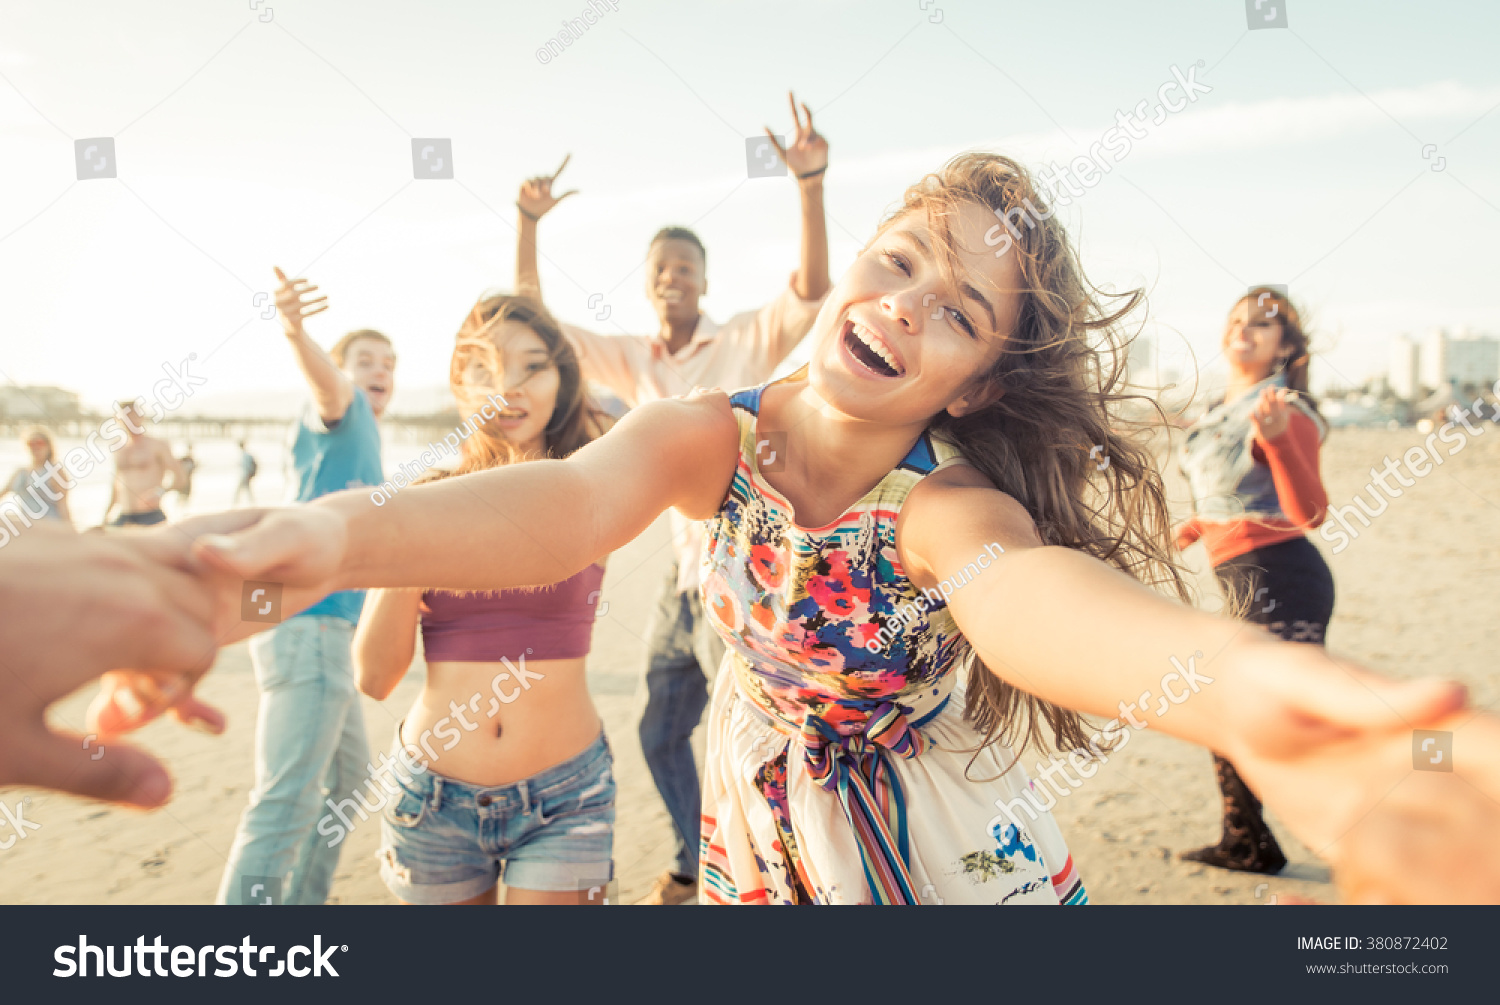 pictures of having fun sexually